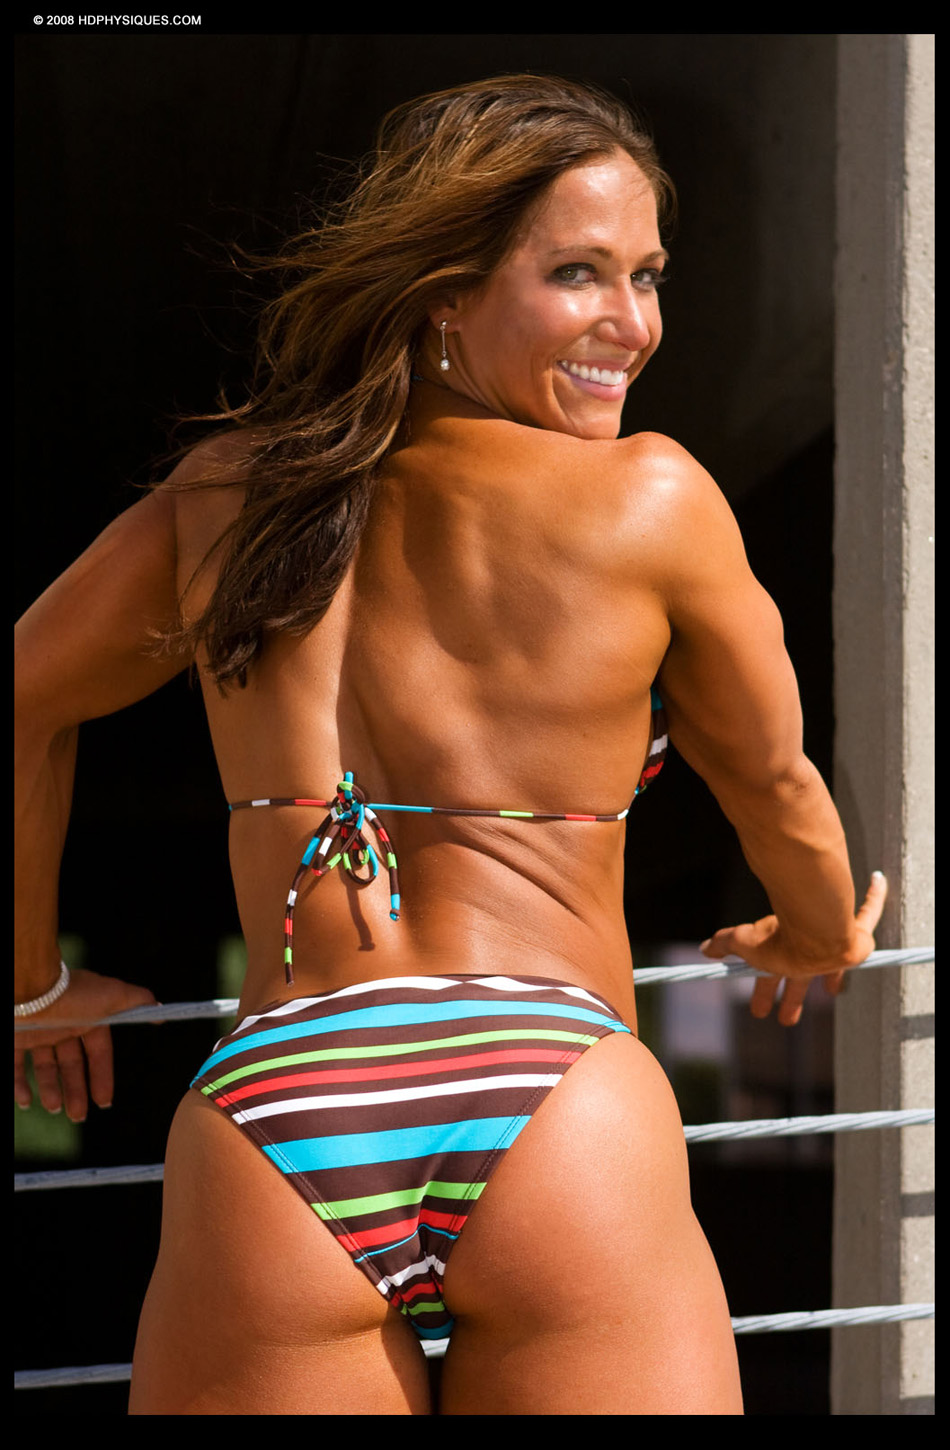 Female Bodybuilder Sarah Hayes - Photo by HD Physiques